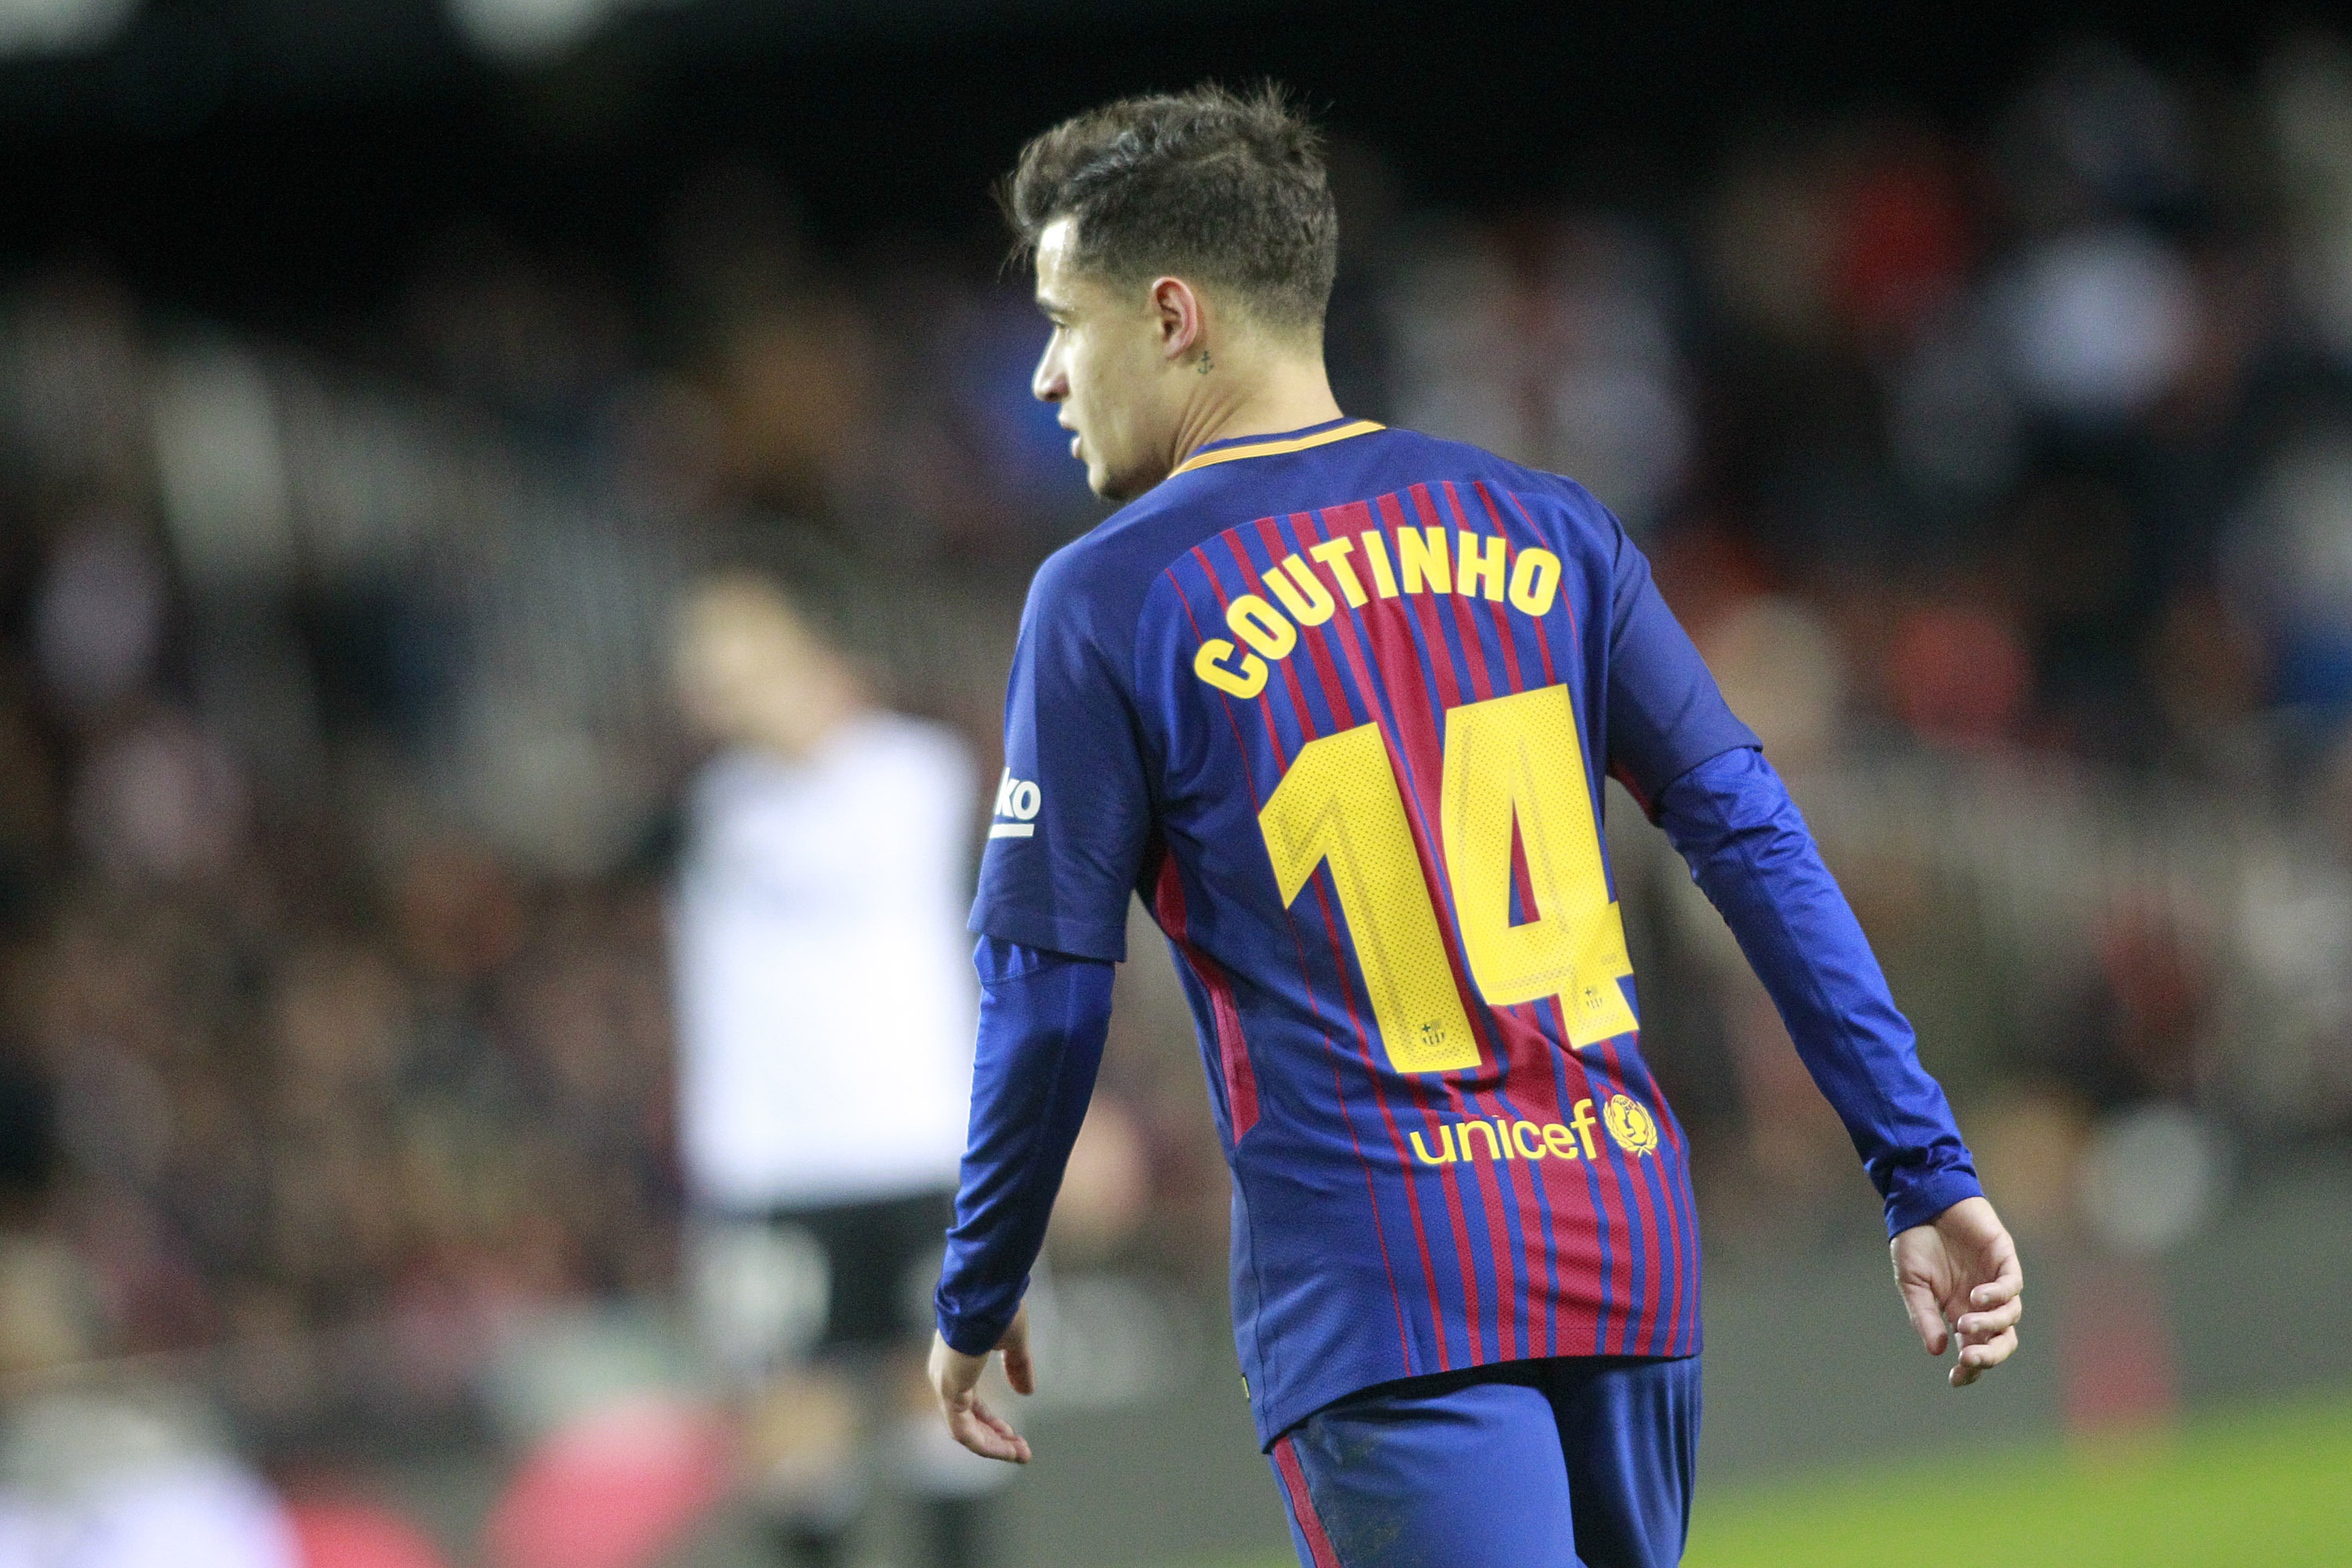 Philippe Coutinho has been given a new shirt number at Barcelona